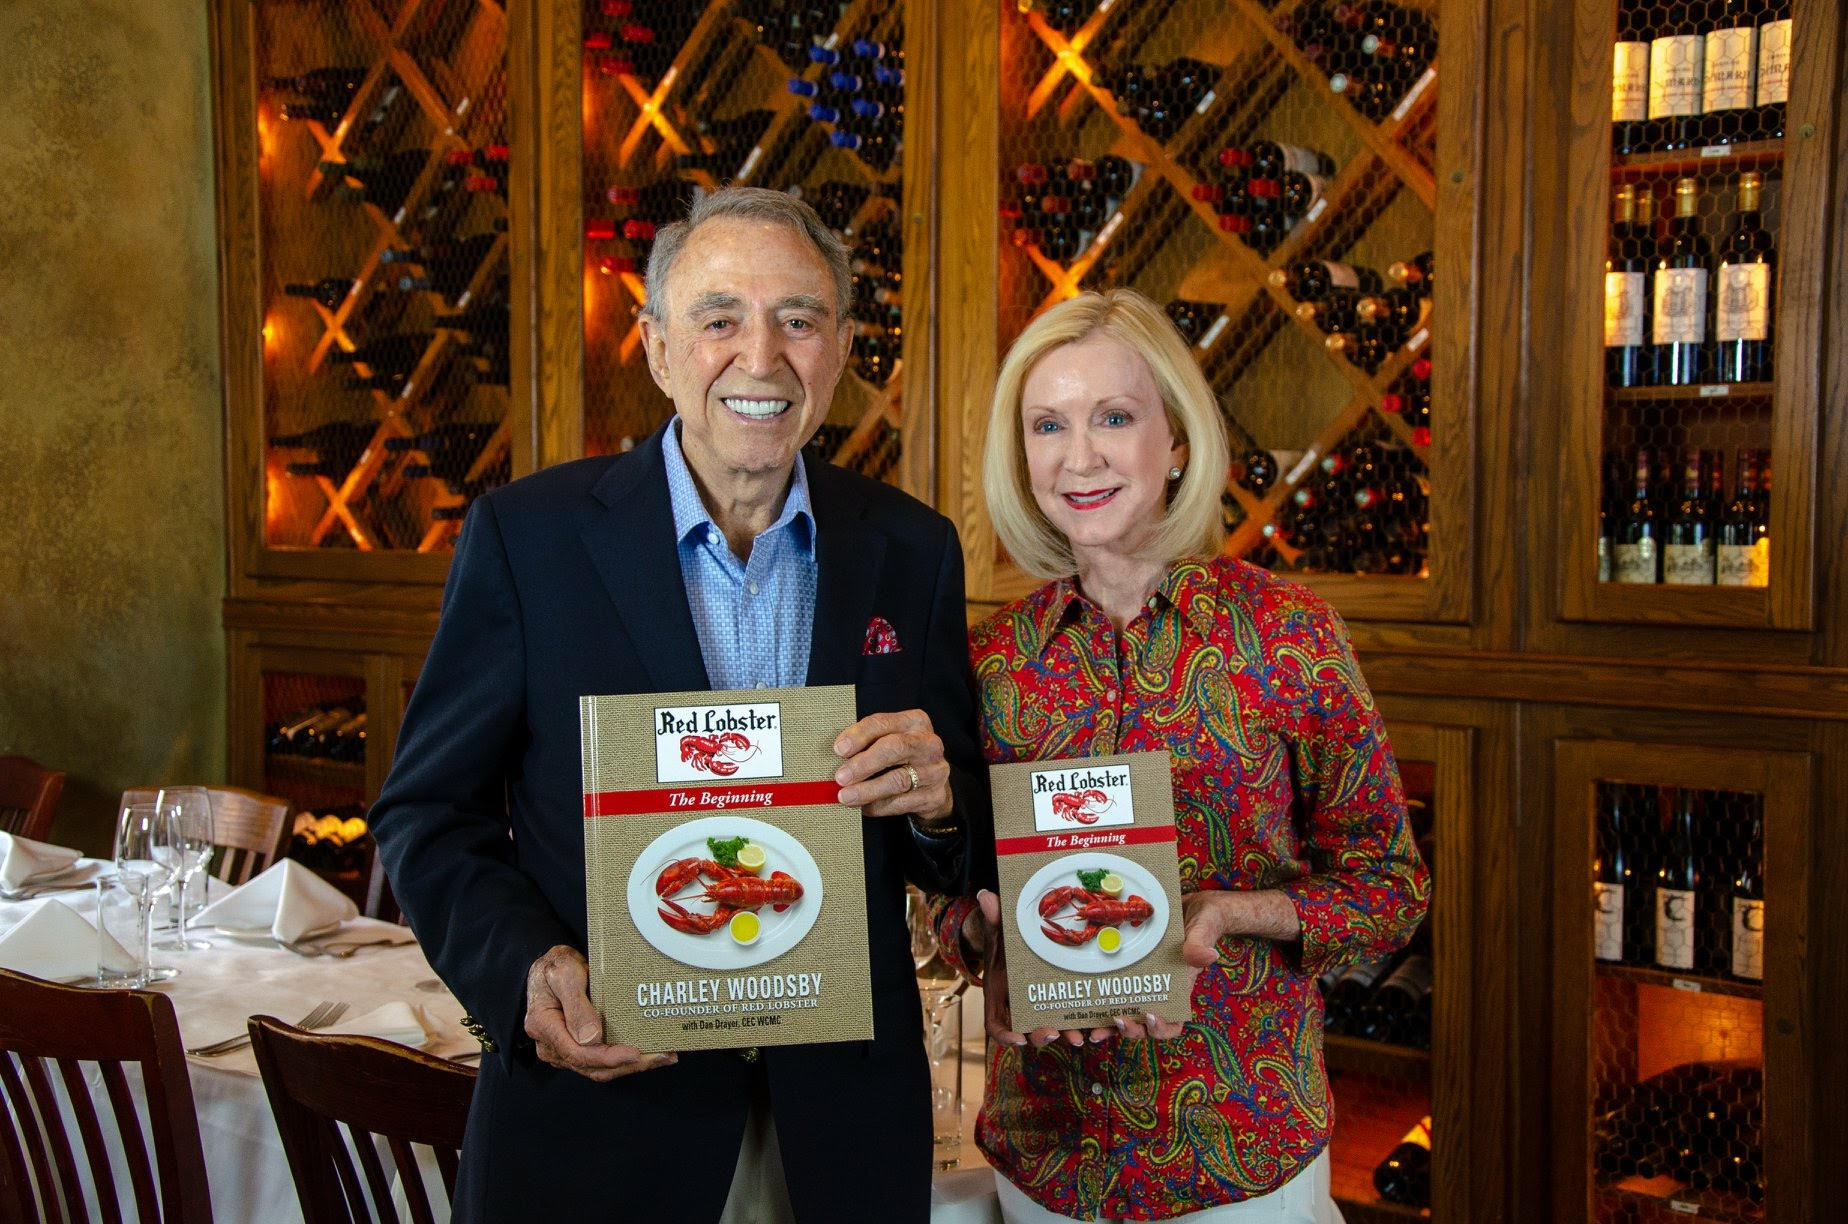 Charley and MaryLou Woodsby with 50 year pictorial history of Red Lobster